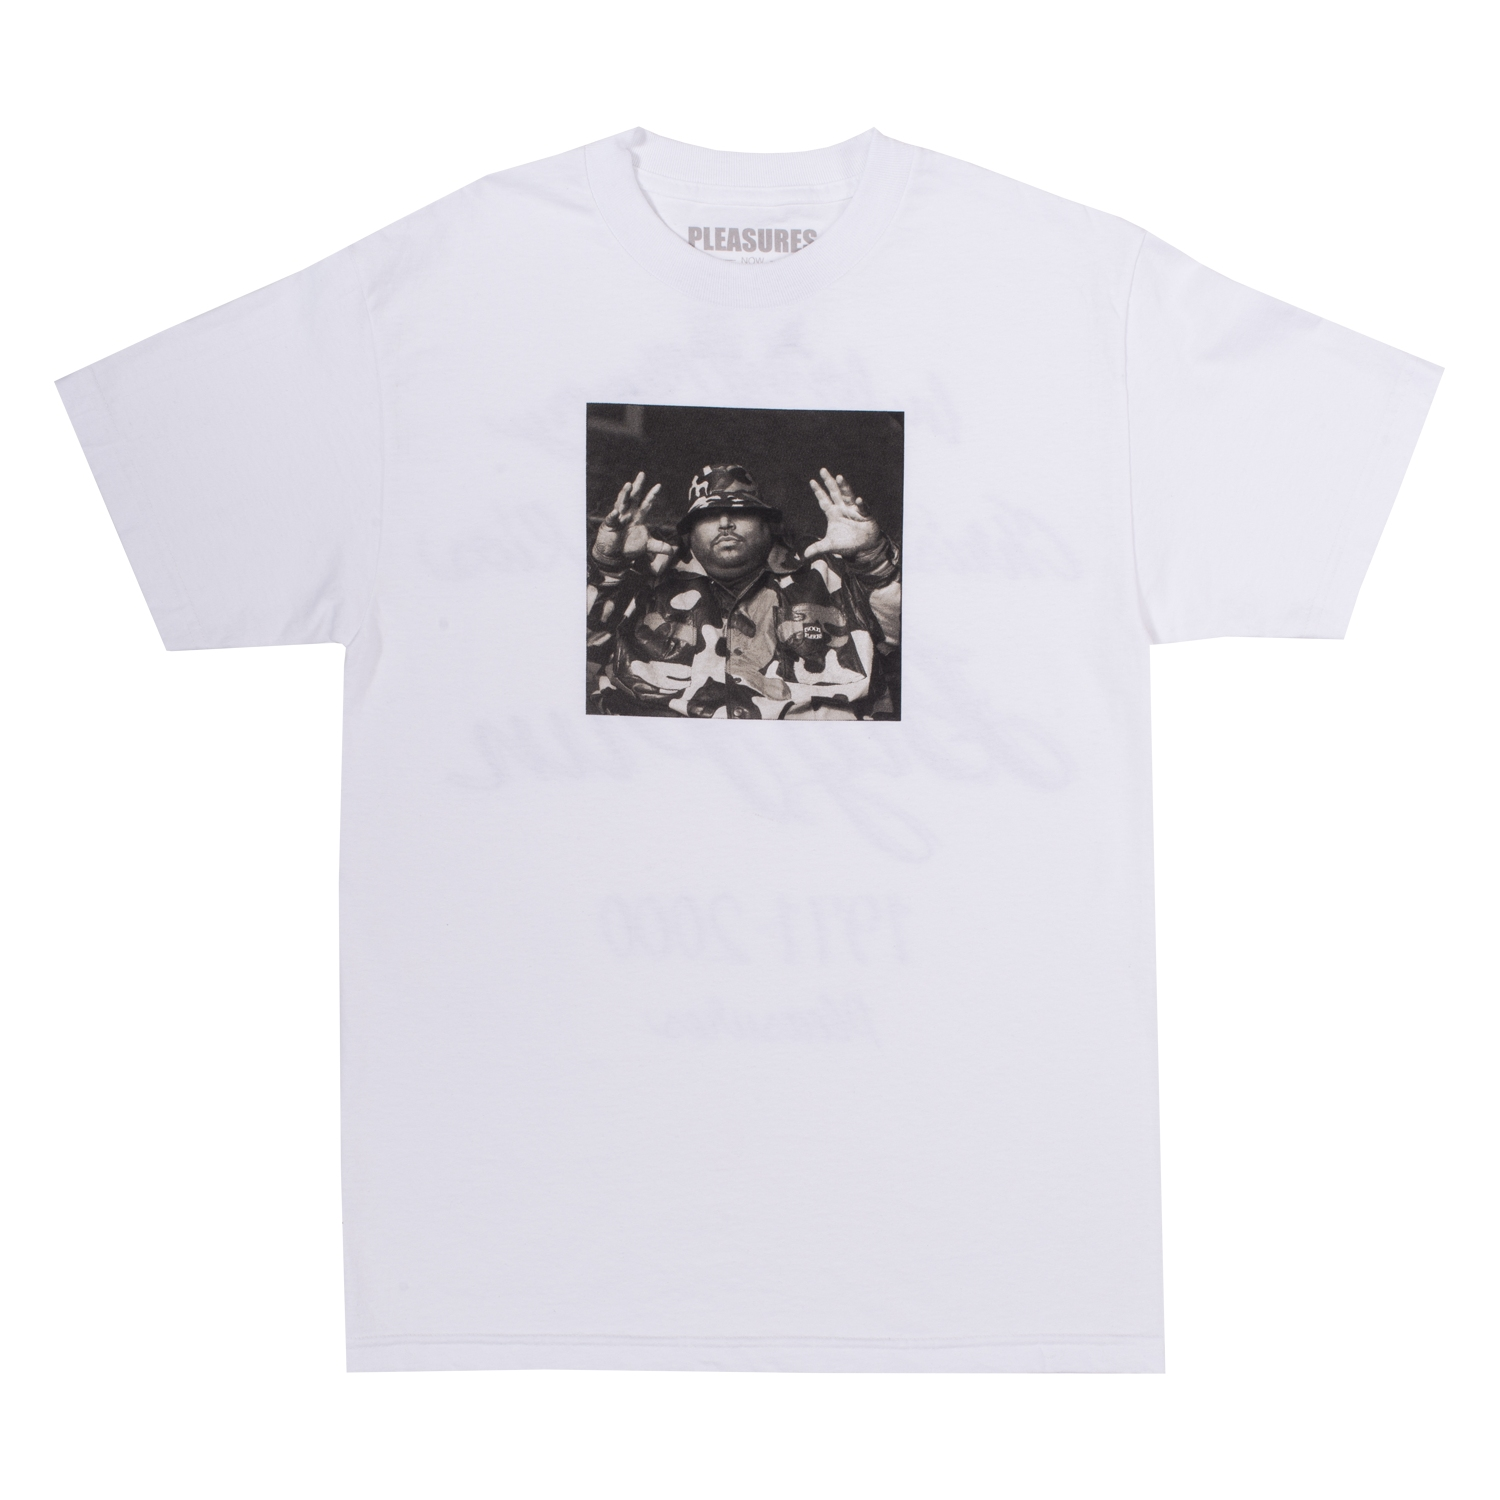 【PLEASURES/プレジャーズ×BIG PUN/ビッグ・パン】CHRISTOPHER T-SHIRT Tシャツ / WHITE